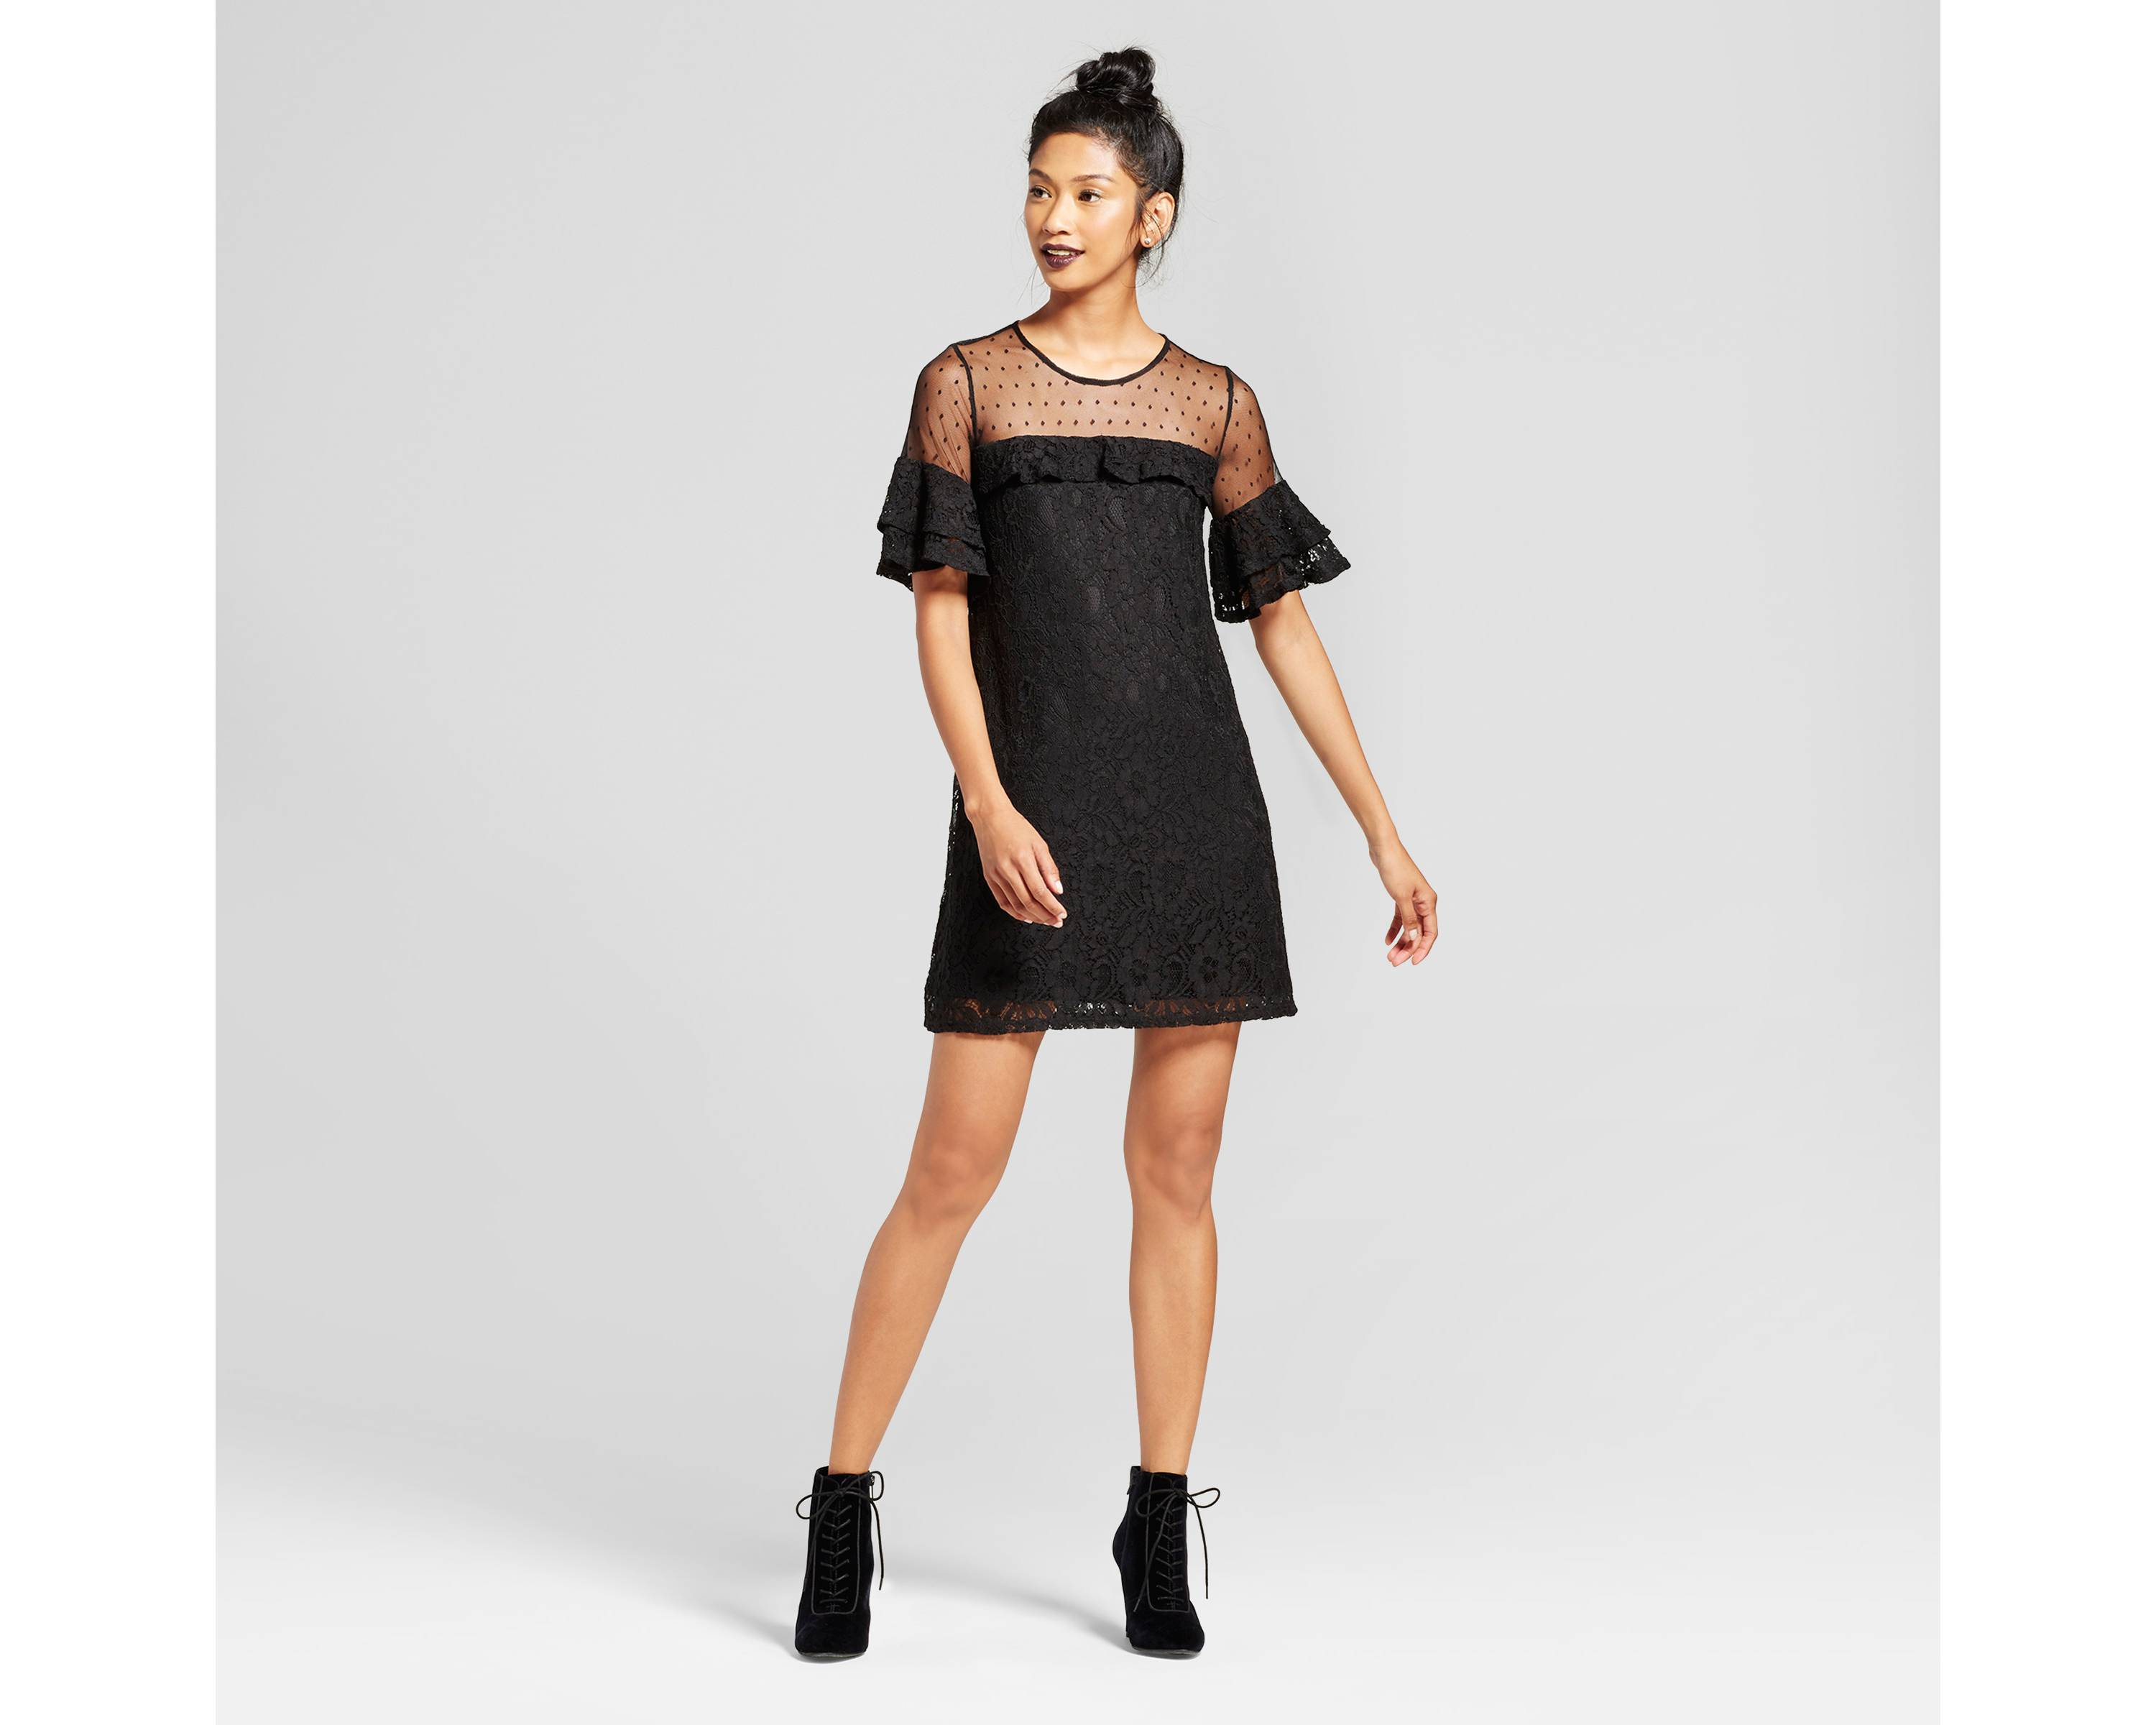 Women's Lace Illusion Dot Dress{&amp;nbsp;} - $32.99. There's no need to break the bank with this Lace Illusion Dot Dress.{&amp;nbsp;} If its a bit cold out, pair with black tights and heels. (Image: Target)<p></p>